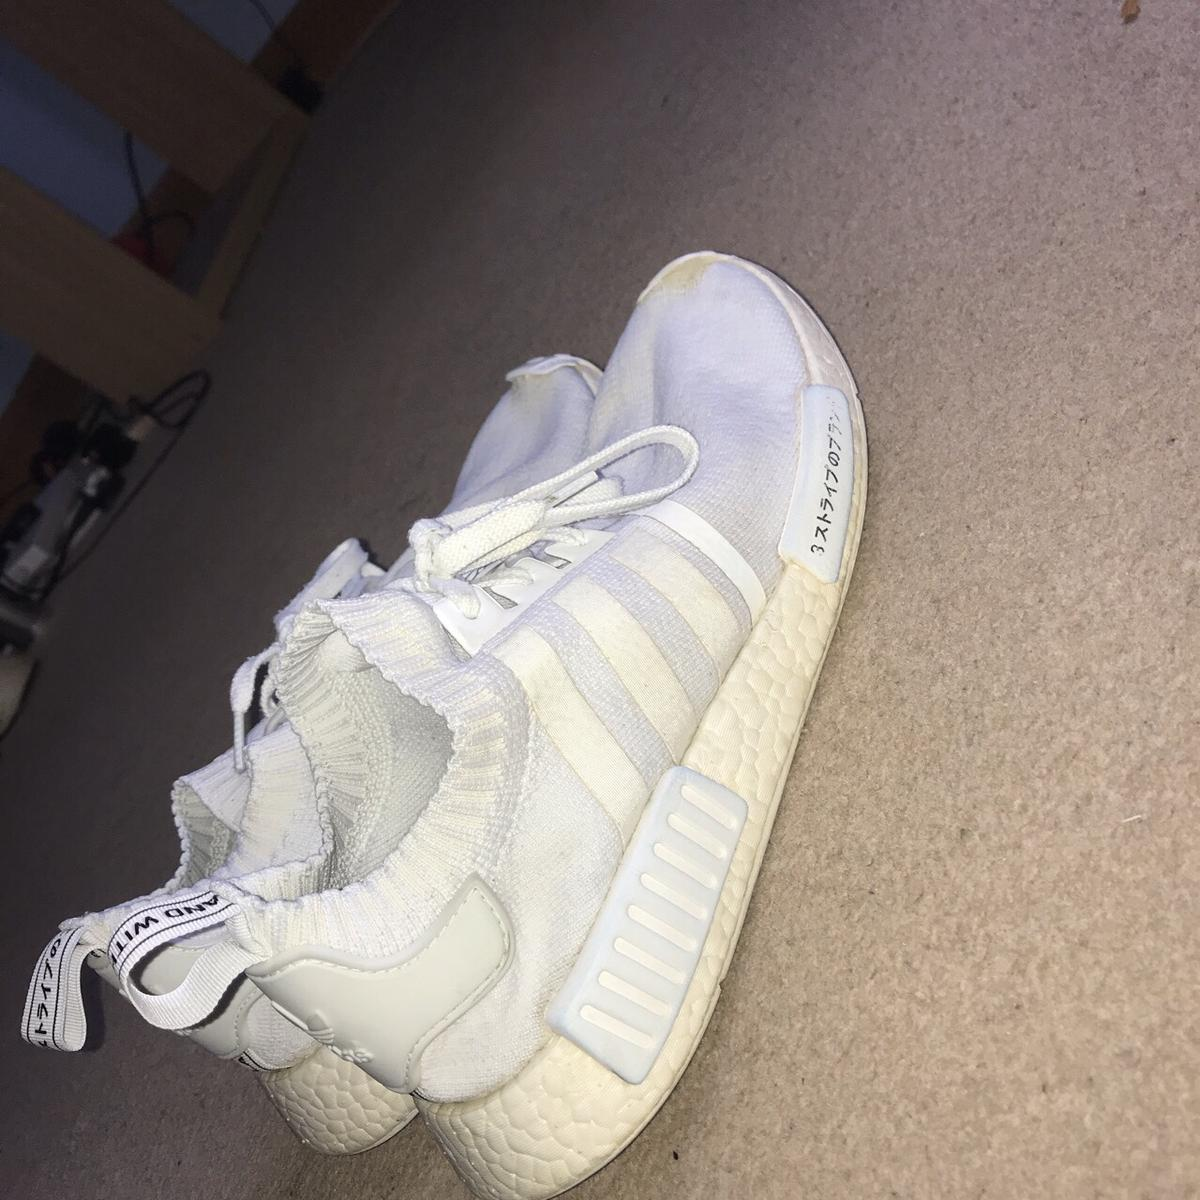 4d7ebdd1011f1 Adidas nmd japan r1 white size 9.5 in Cottingwith for £50.00 for ...